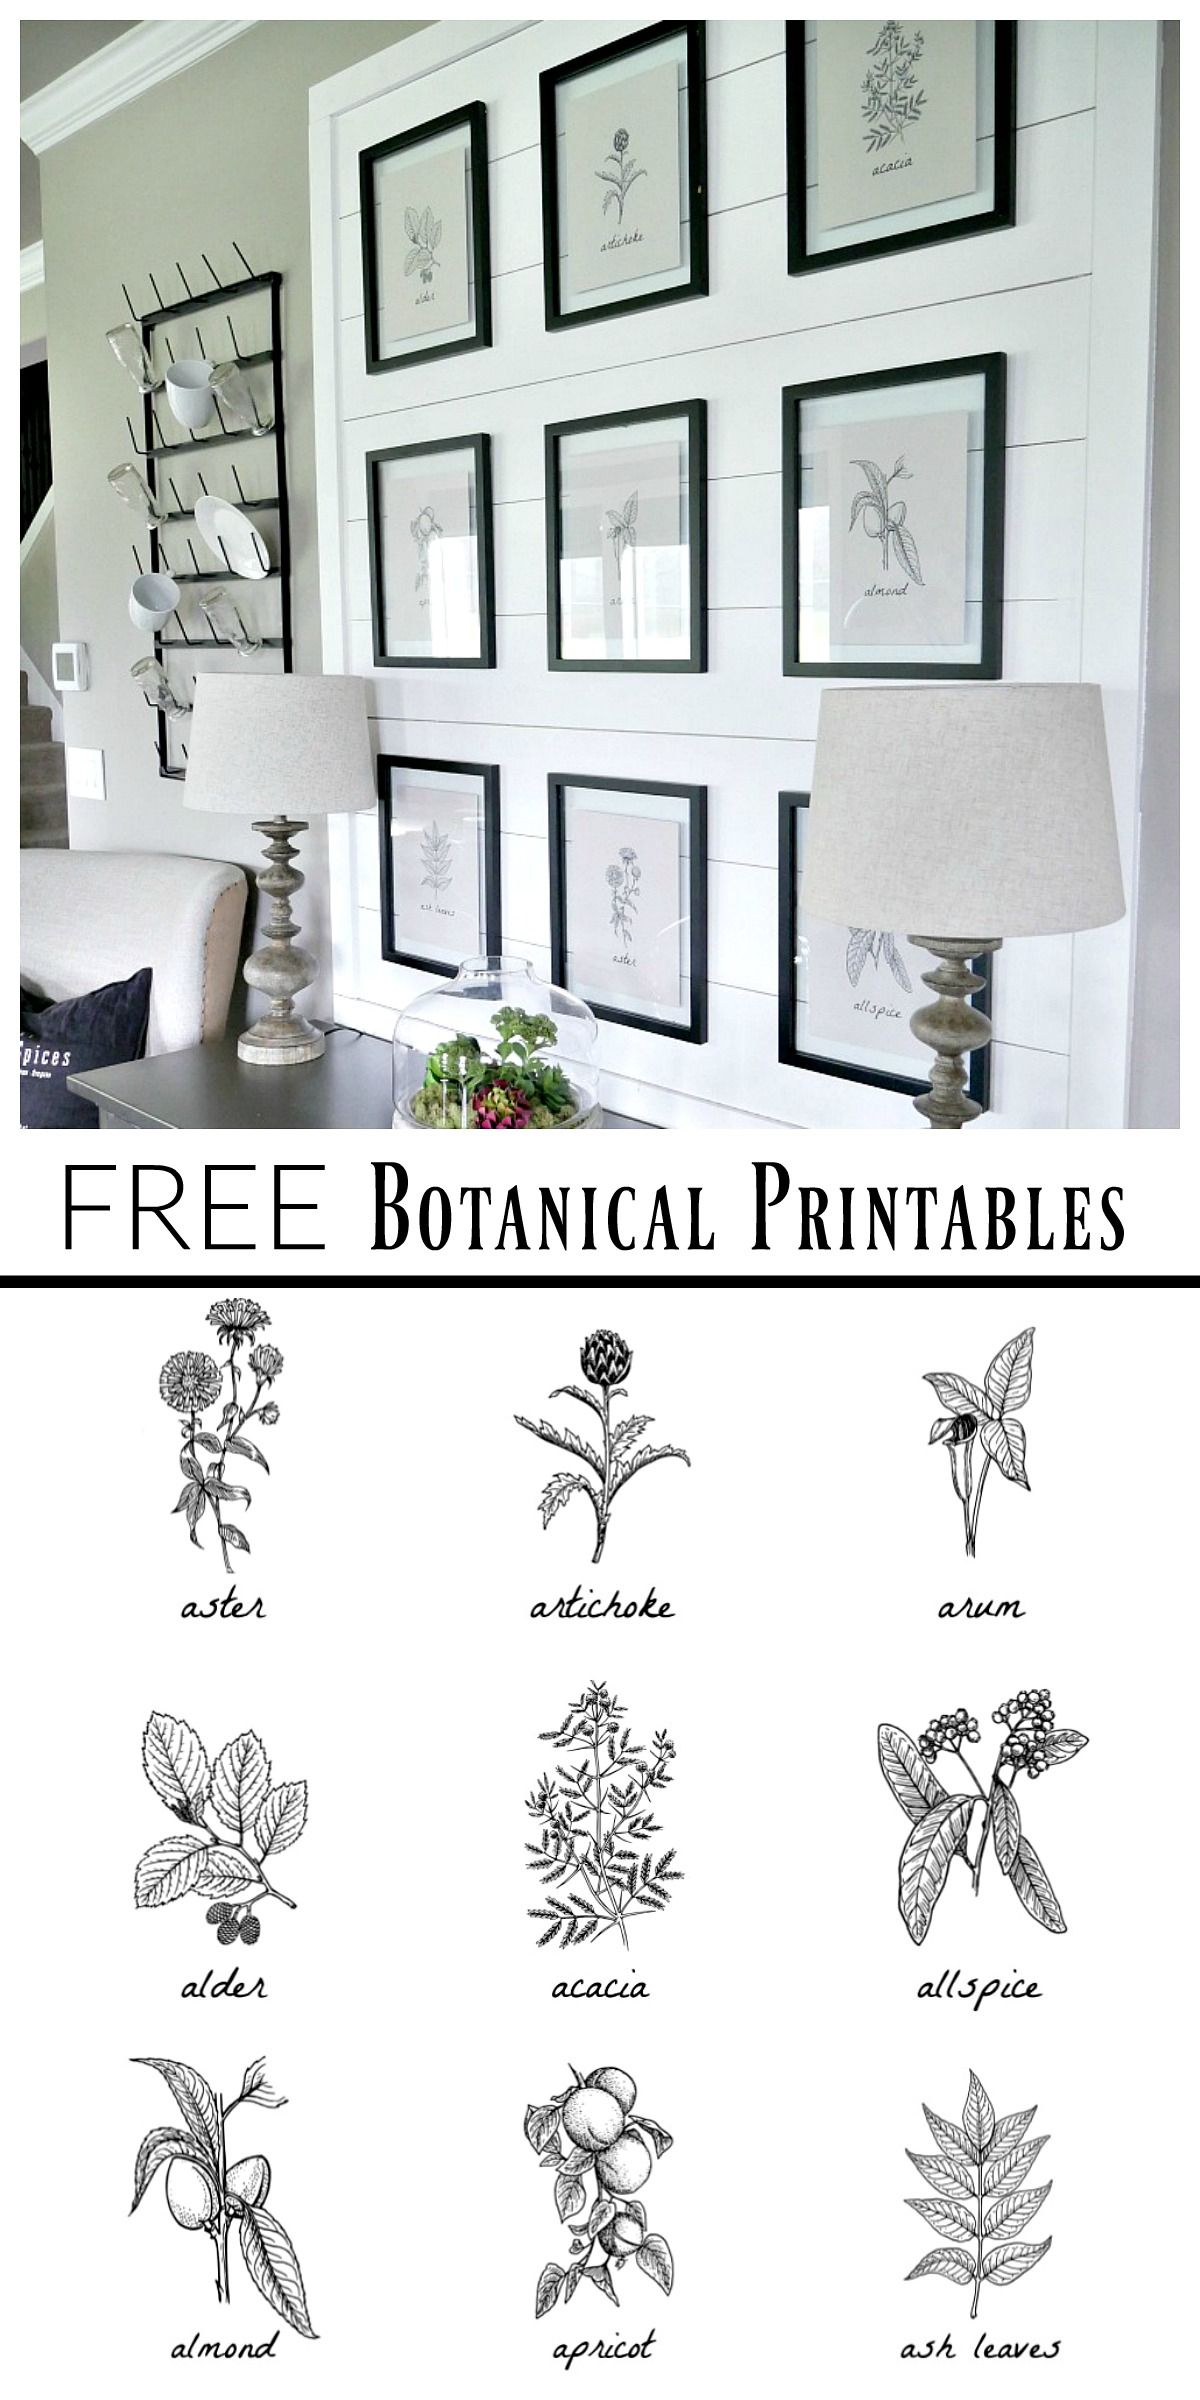 free botanical prints bloggers 39 best diy ideas pinterest deko wanddeko und einrichtungsideen. Black Bedroom Furniture Sets. Home Design Ideas